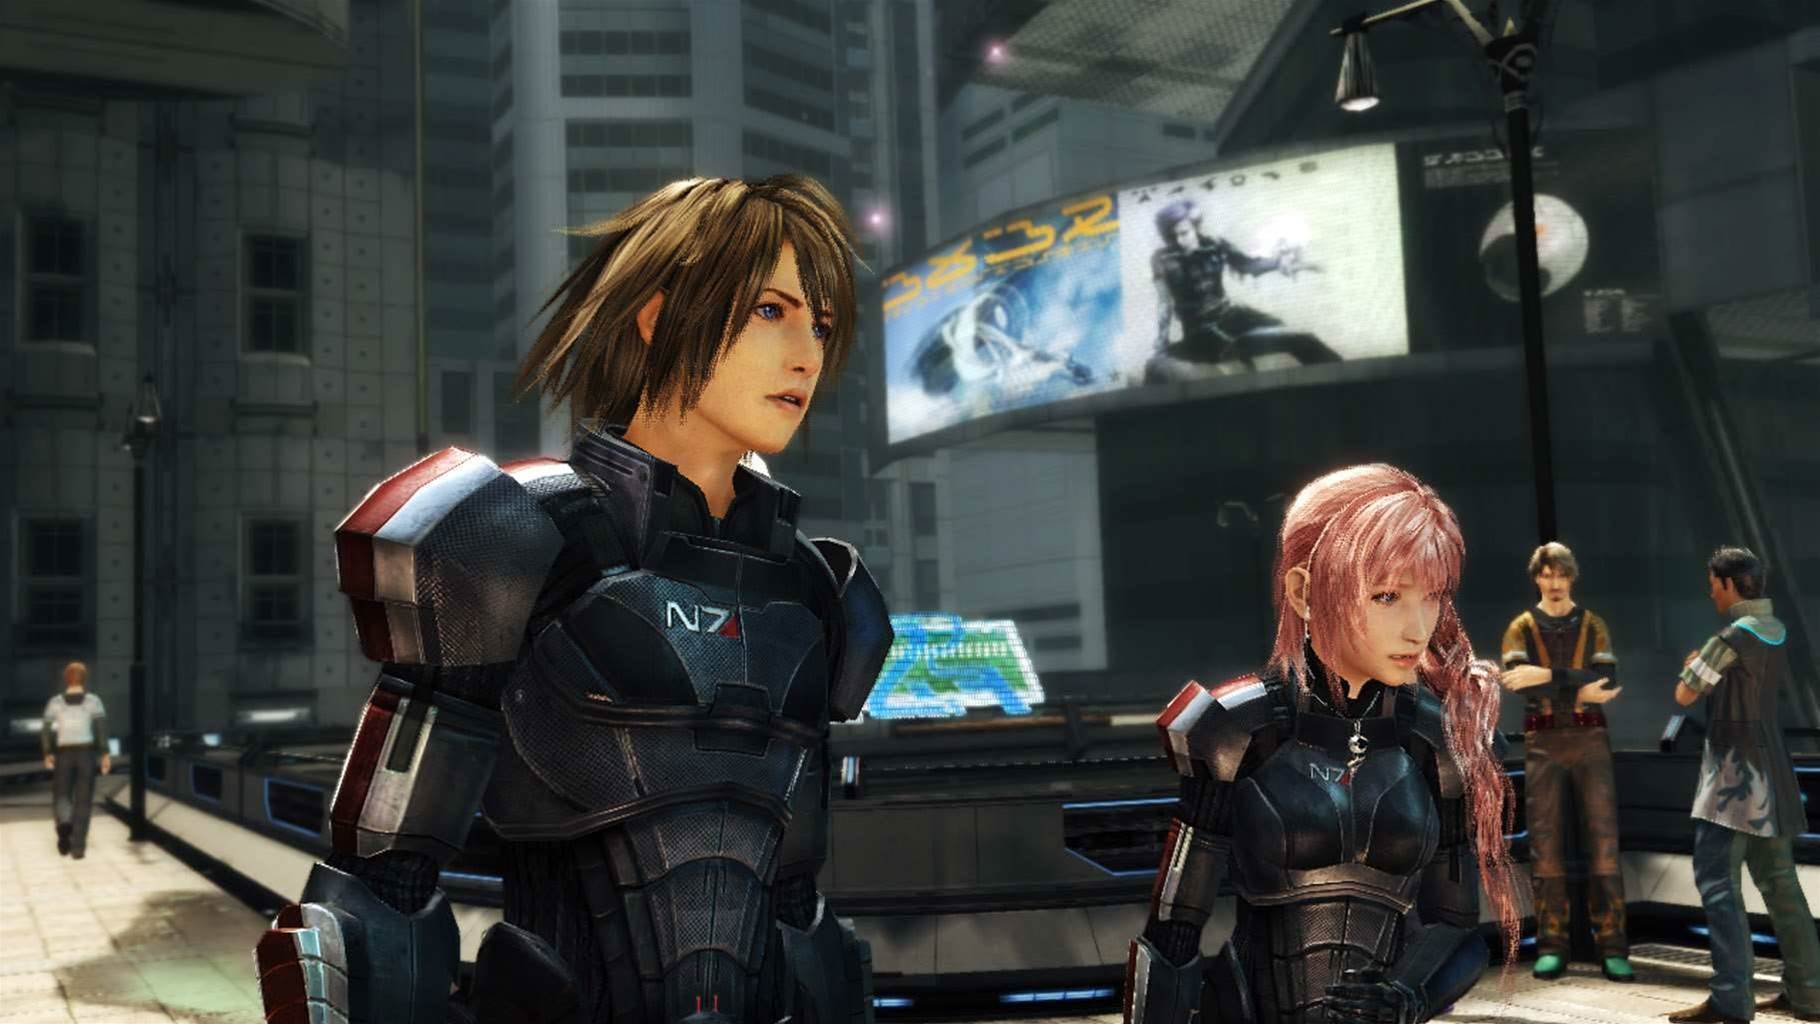 Mass Effect 3 + Final Fantasy XIII-2 = WTF?